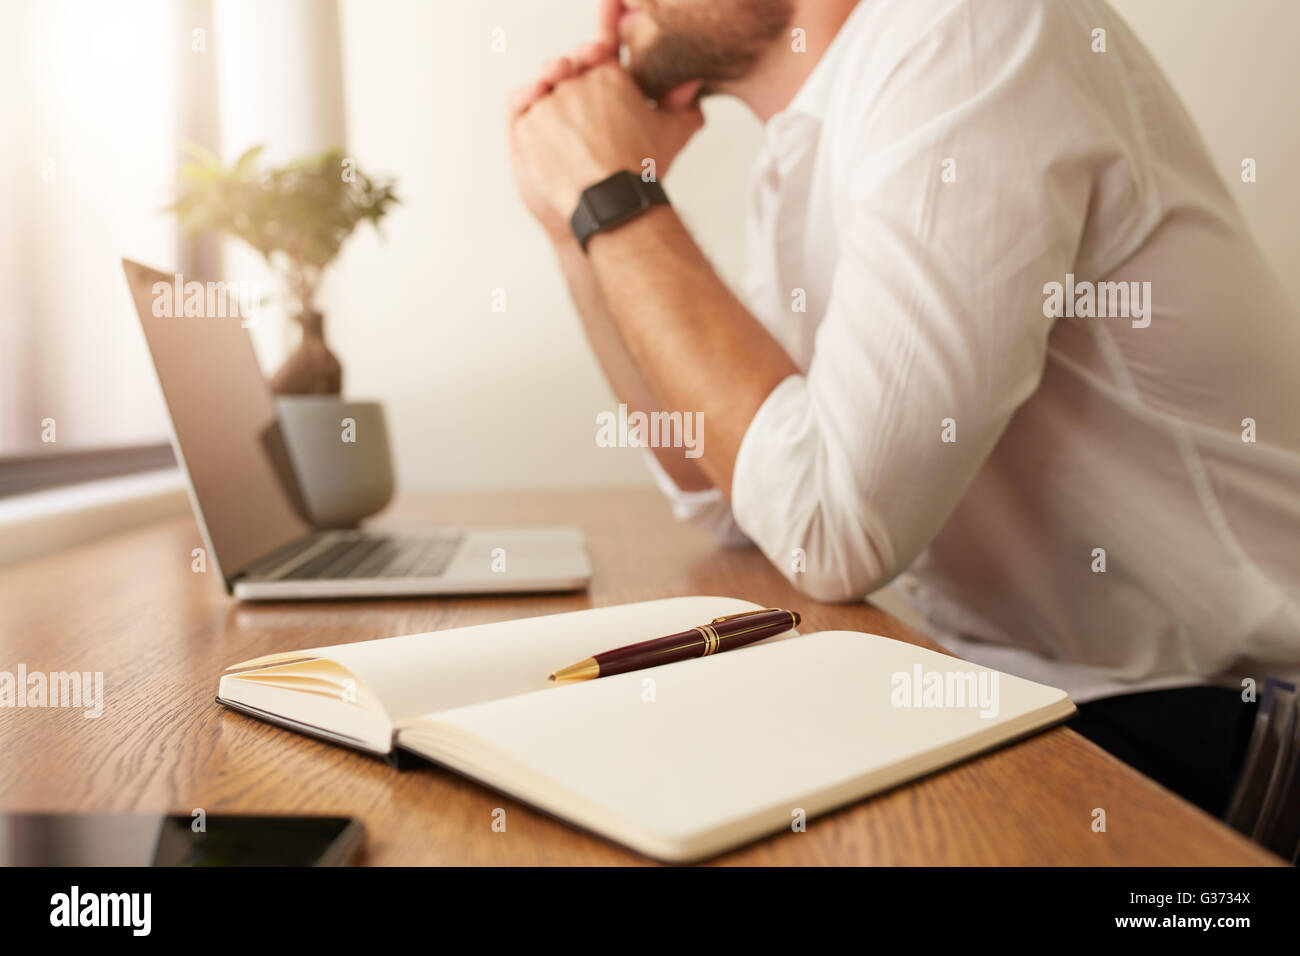 Image of personal organizer on table with businessman sitting in background. Diary with pen on table with man working - Stock Image